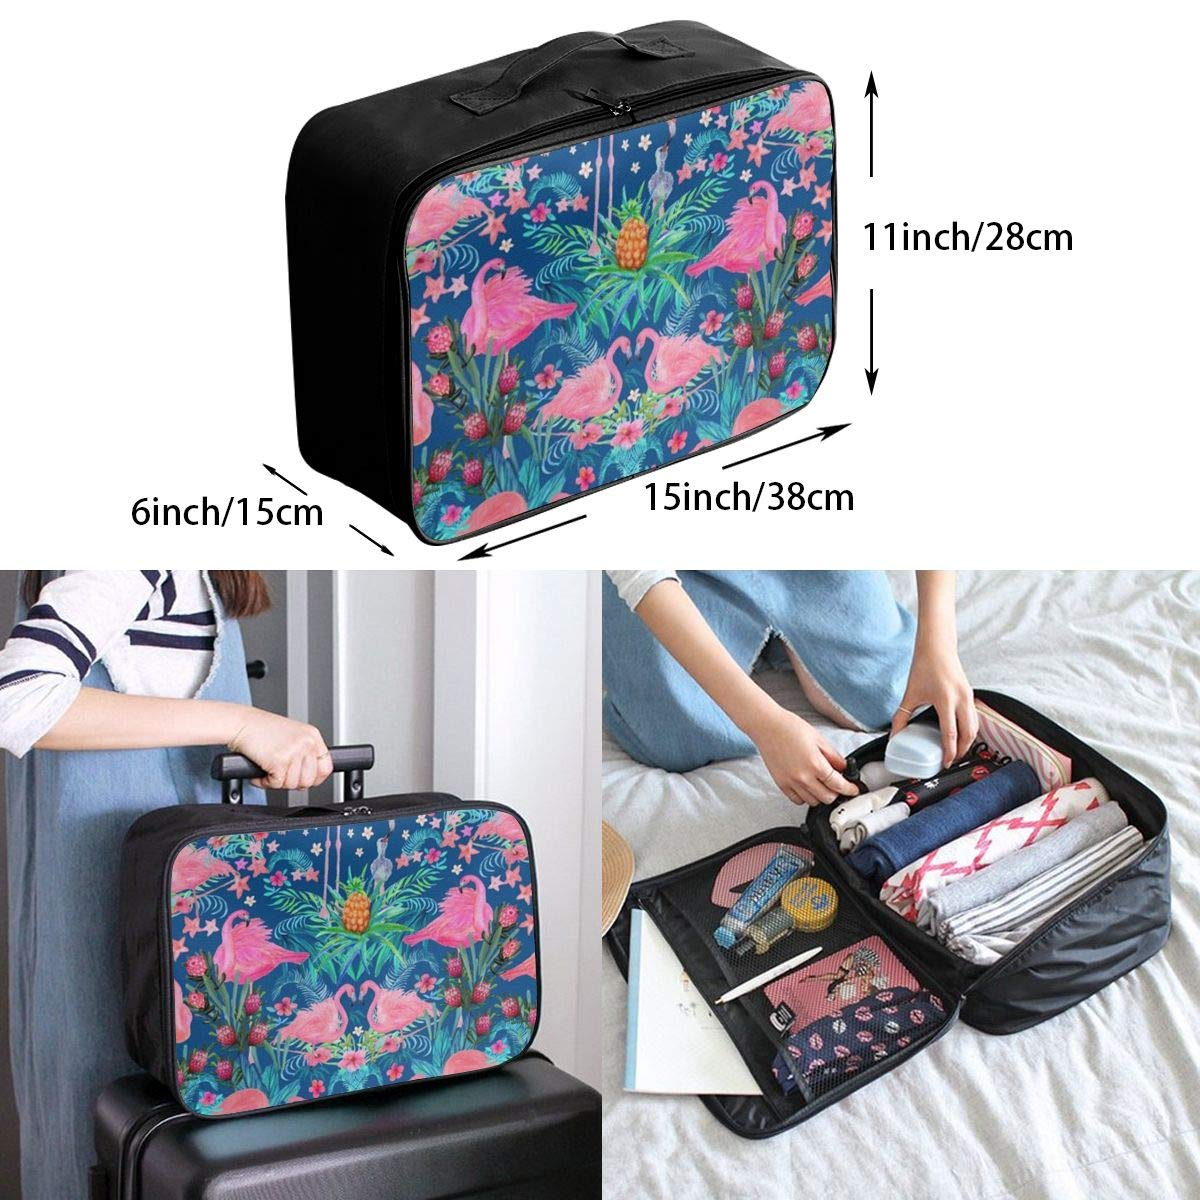 ADGAI Watercolor Flamingos Floral Tropical Canvas Travel Weekender Bag,Fashion Custom Lightweight Large Capacity Portable Luggage Bag,Suitcase Trolley Bag